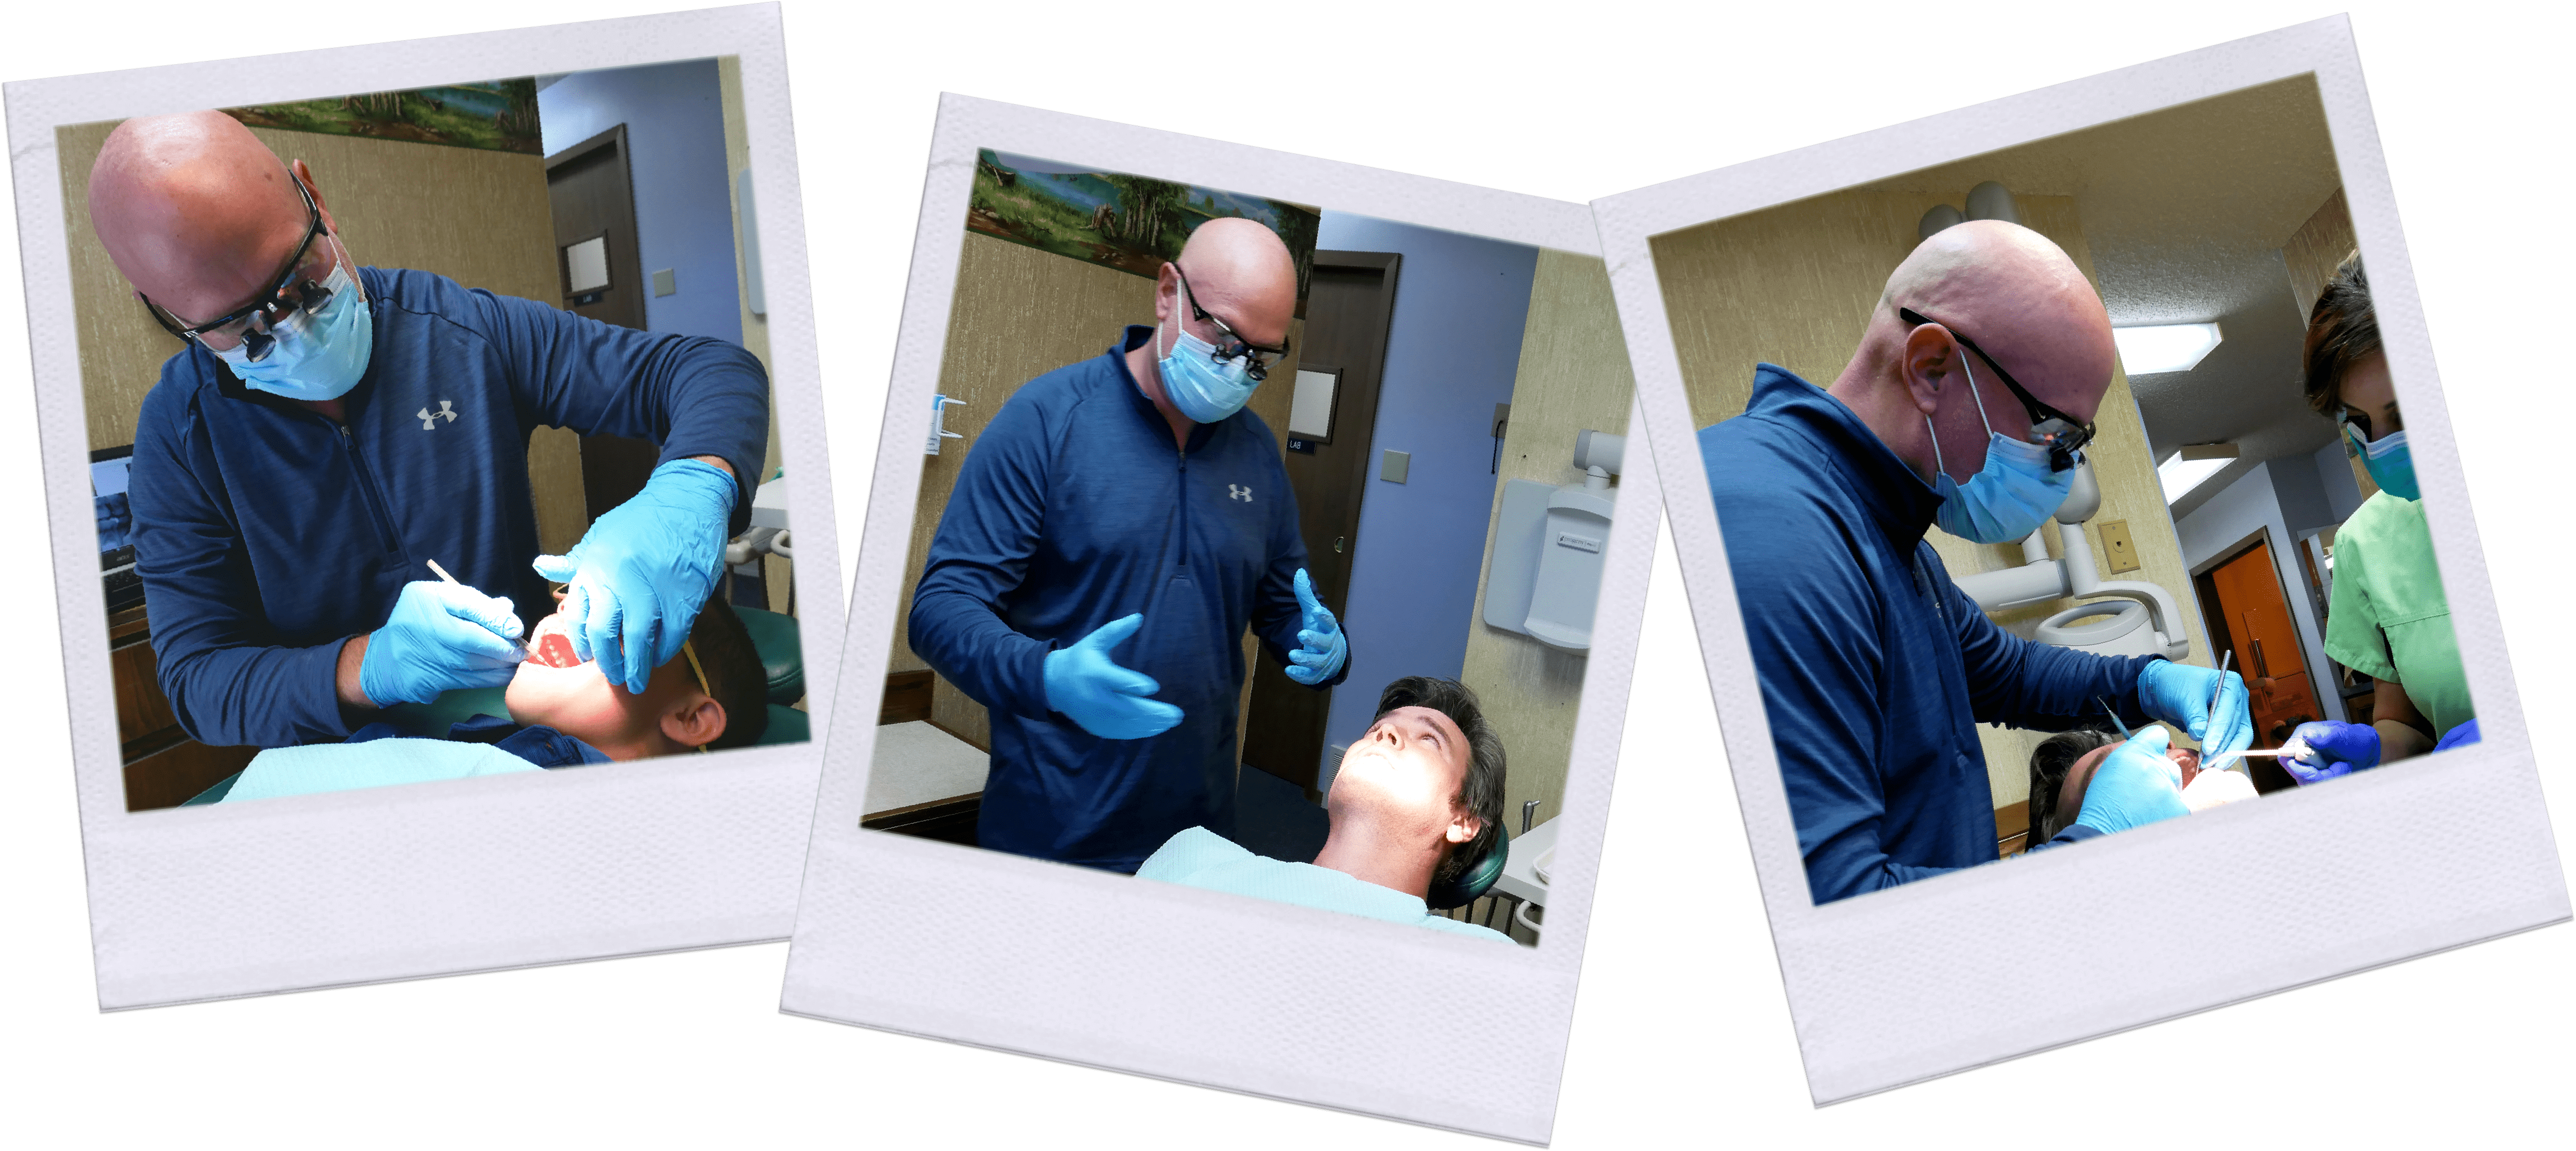 Dr. Coon working with patient and Andrea Blanco dental assistant